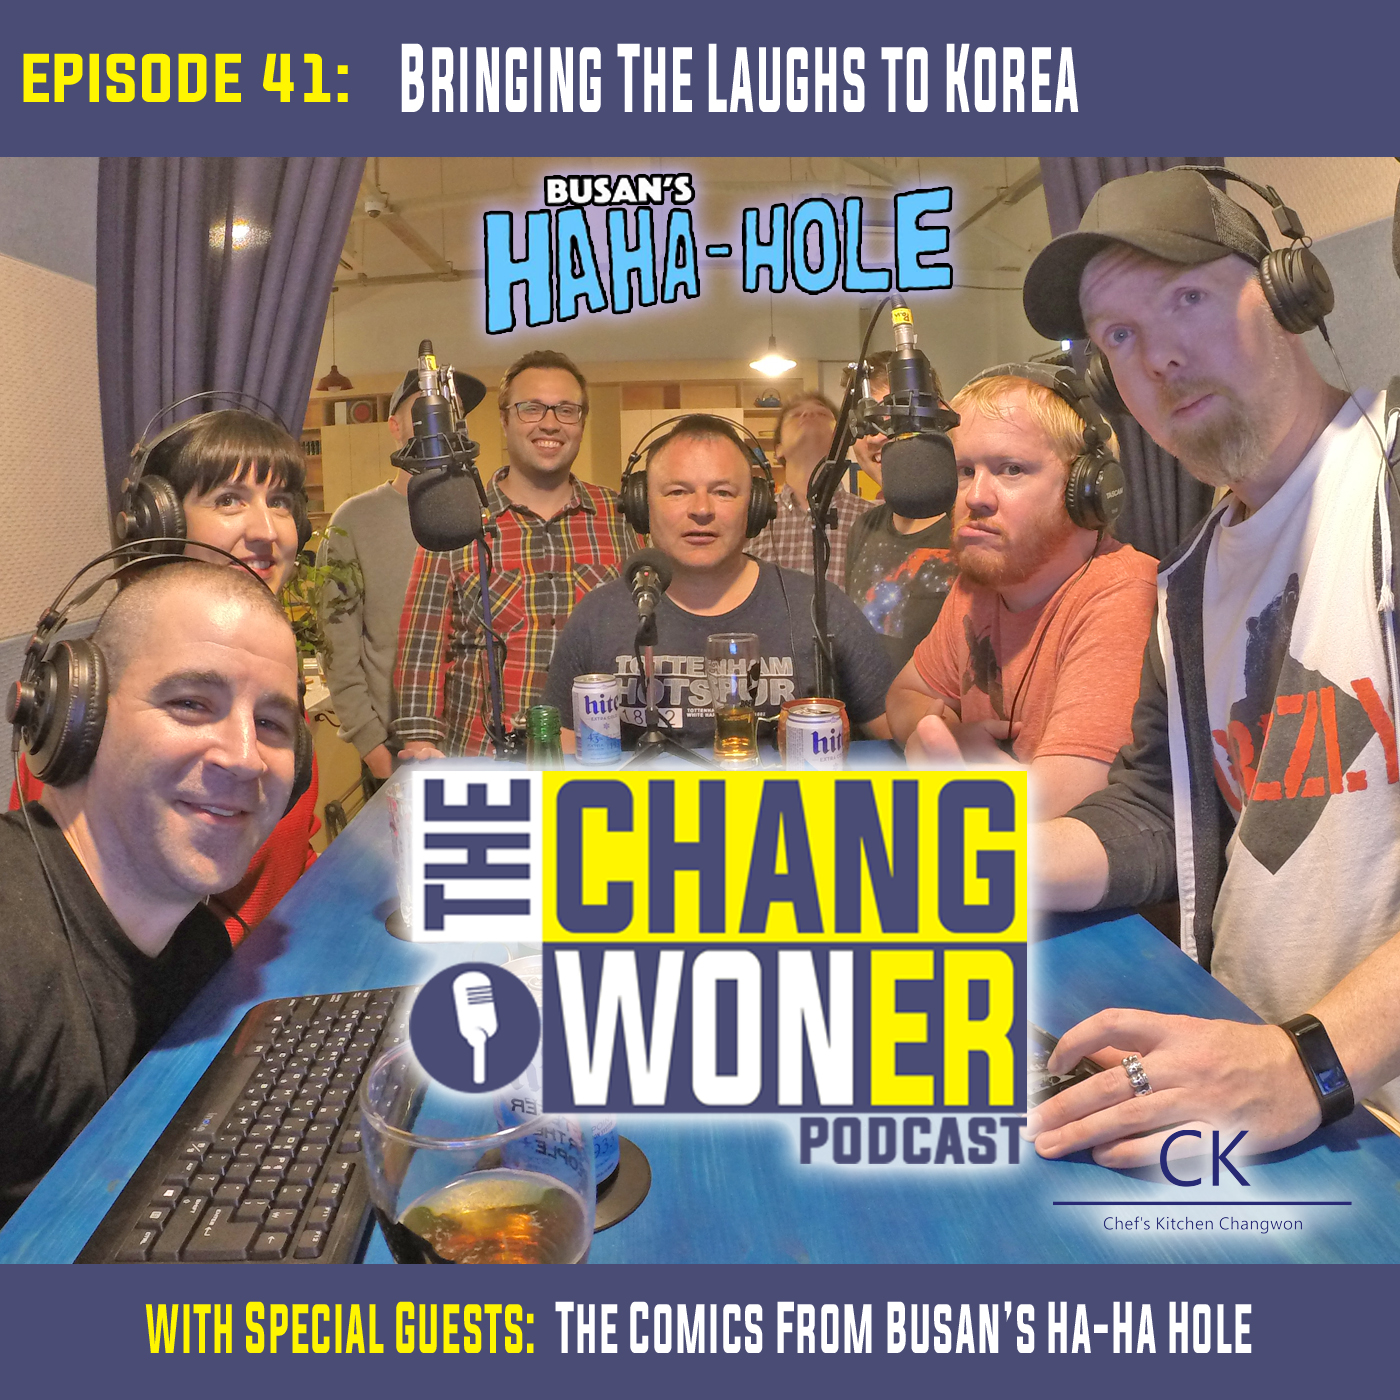 Artwork for Stand-Up Comedy in South Korea. Comedy Night in Changwon! -guests Busan's Ha-Ha Hole (Ep 41)